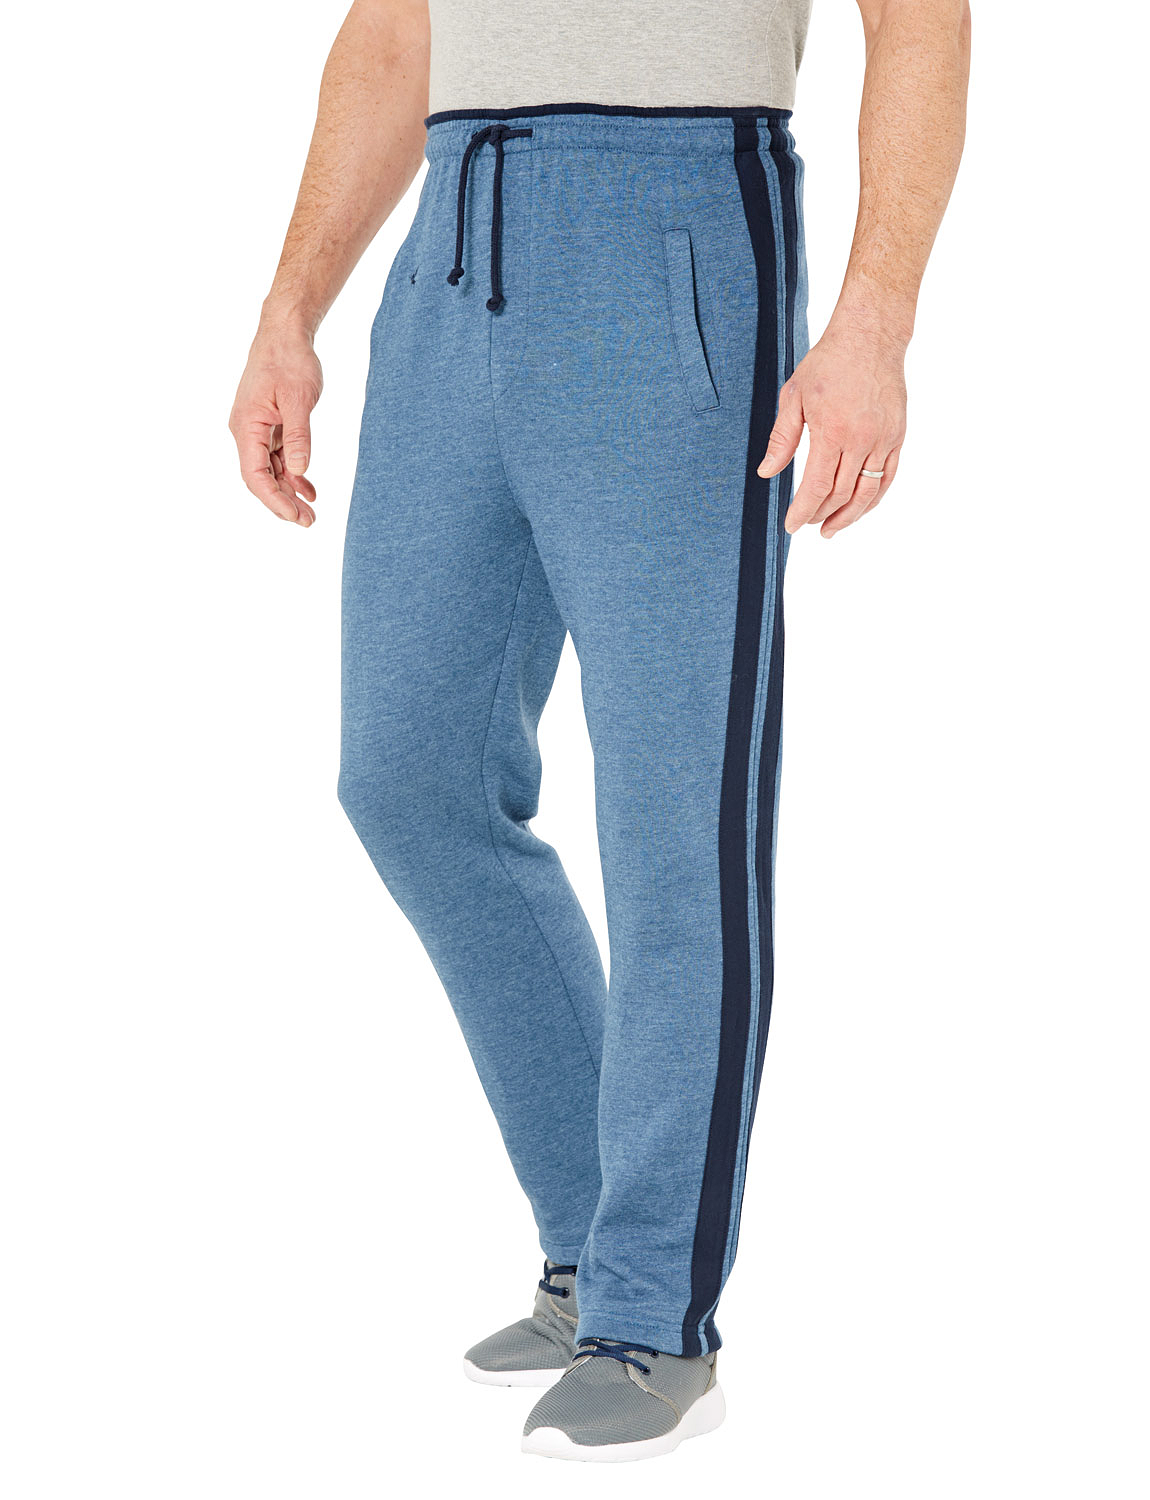 Pegasus Fleece Leisure Trousers